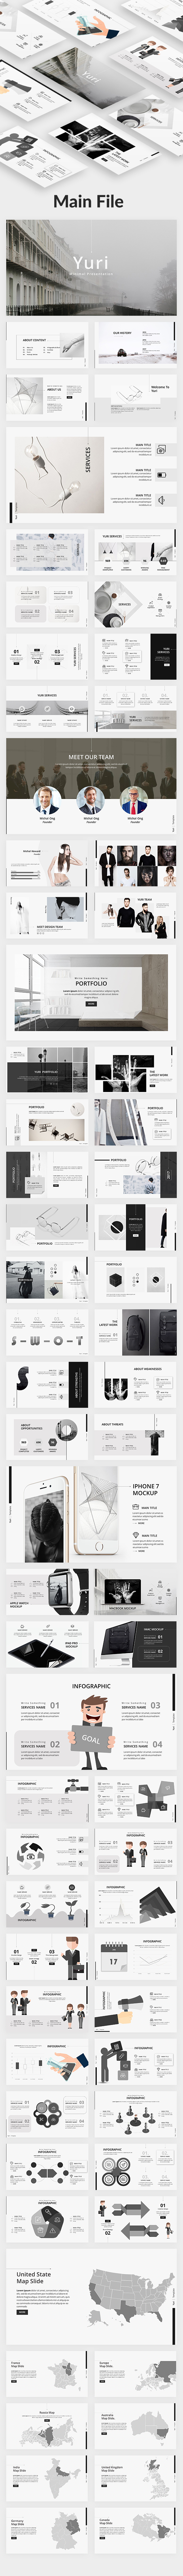 Yuri Creative Powerpoint Template - Creative PowerPoint Templates